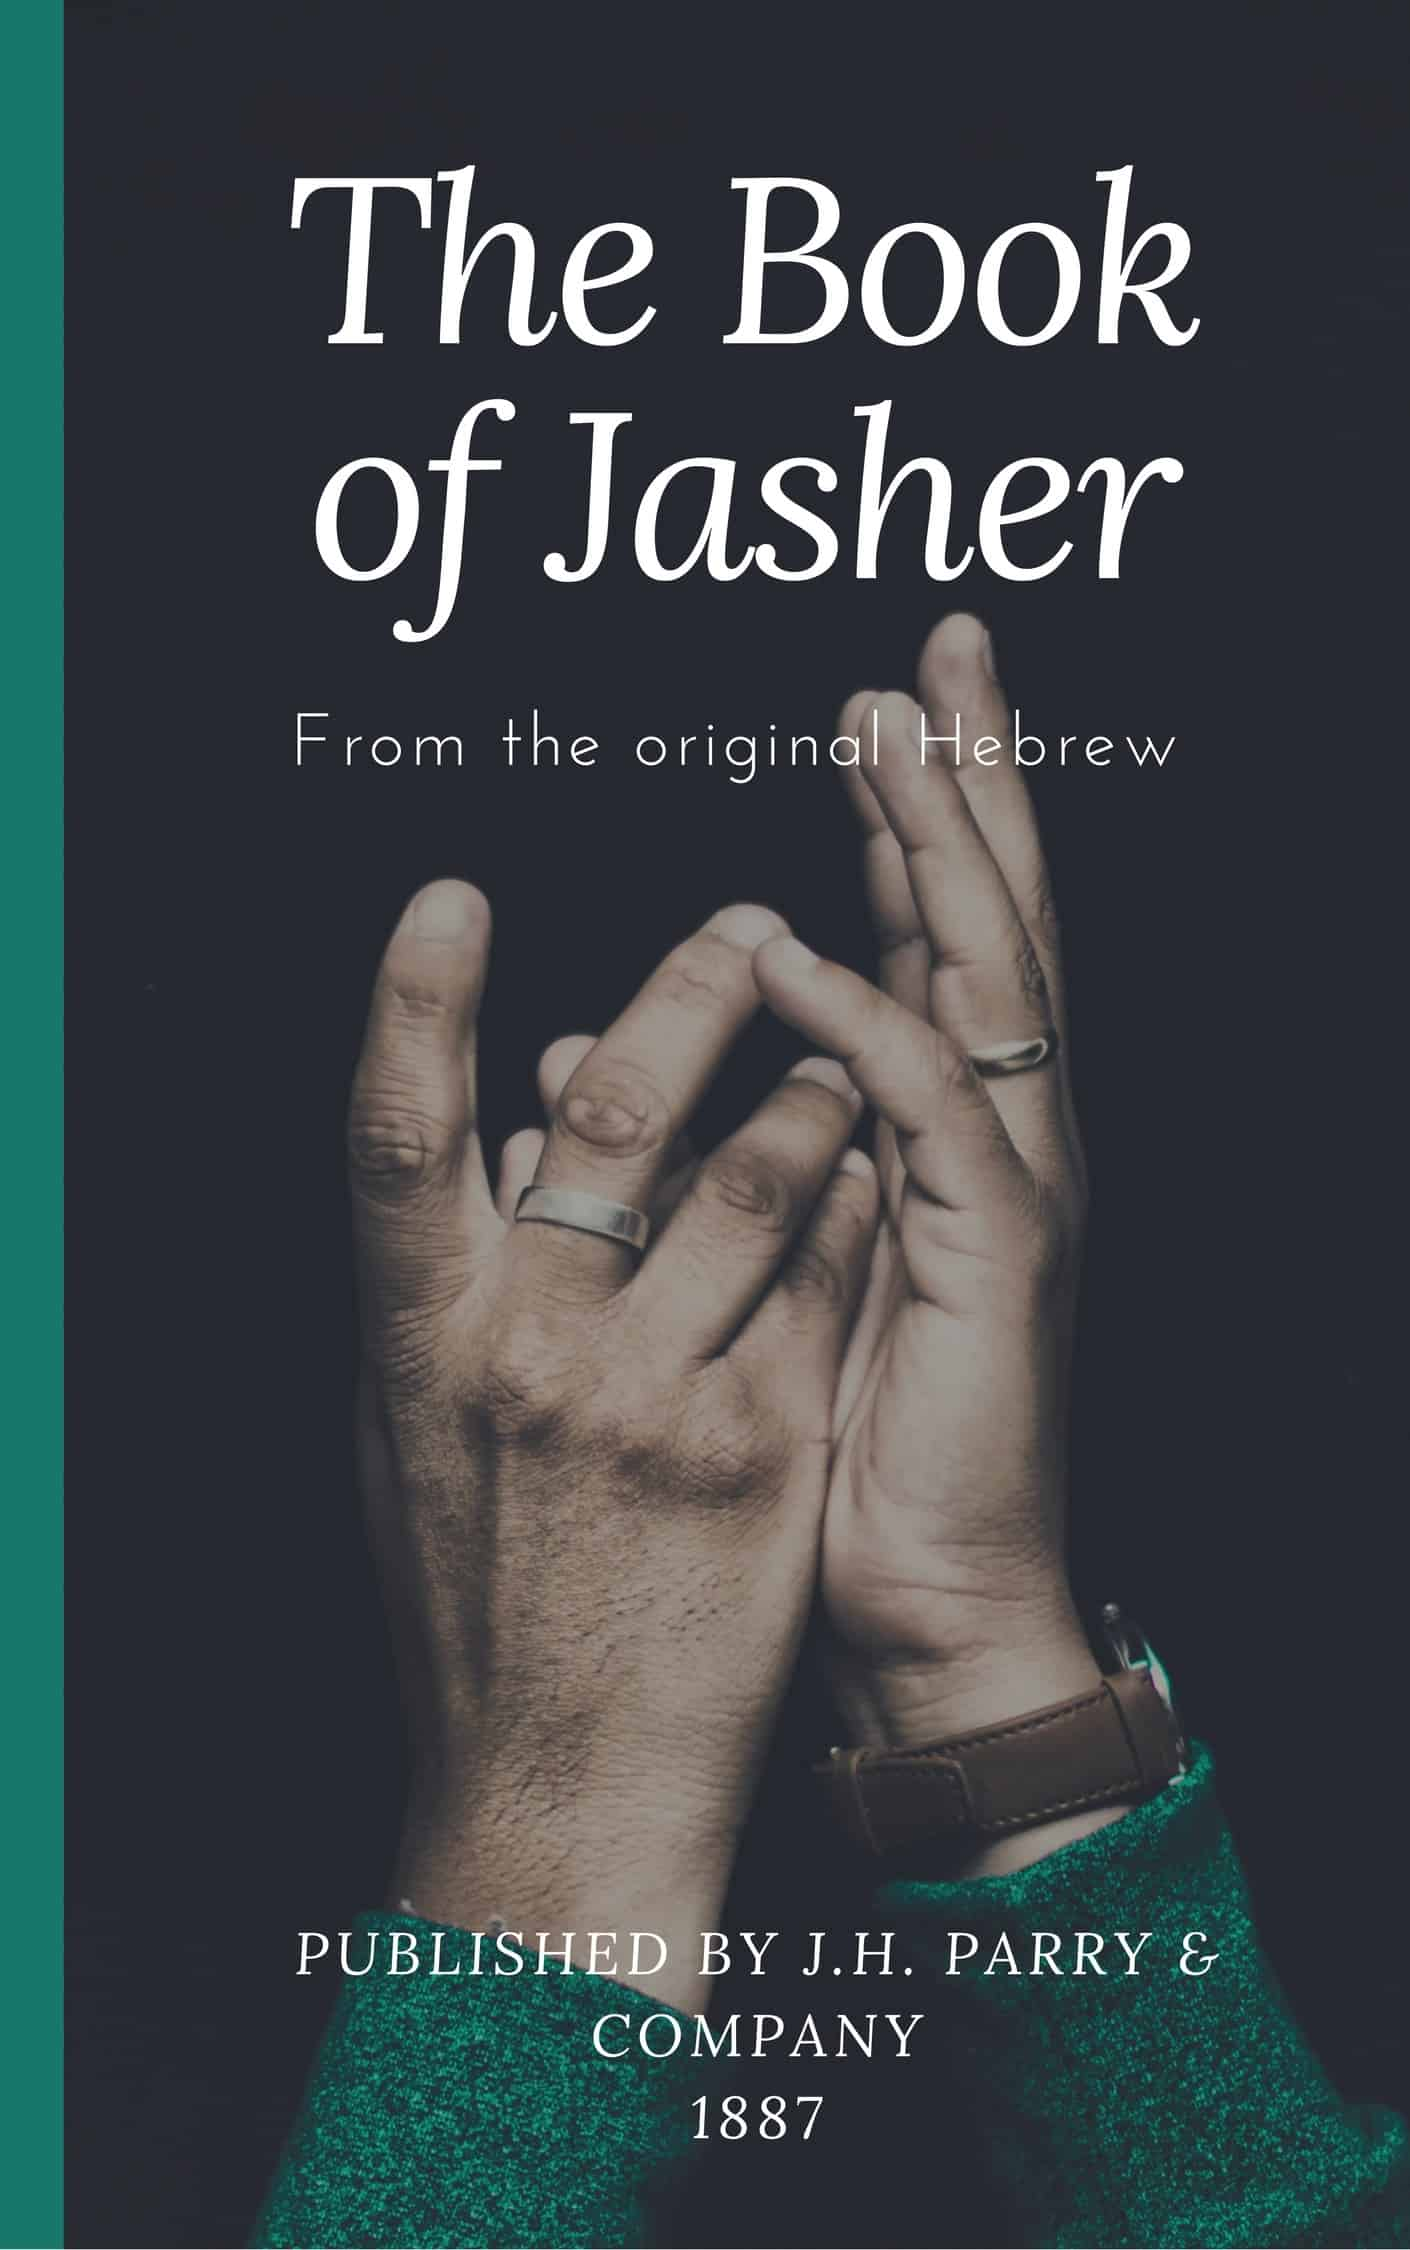 The Book of Jasher download free PDF e-book and listen here